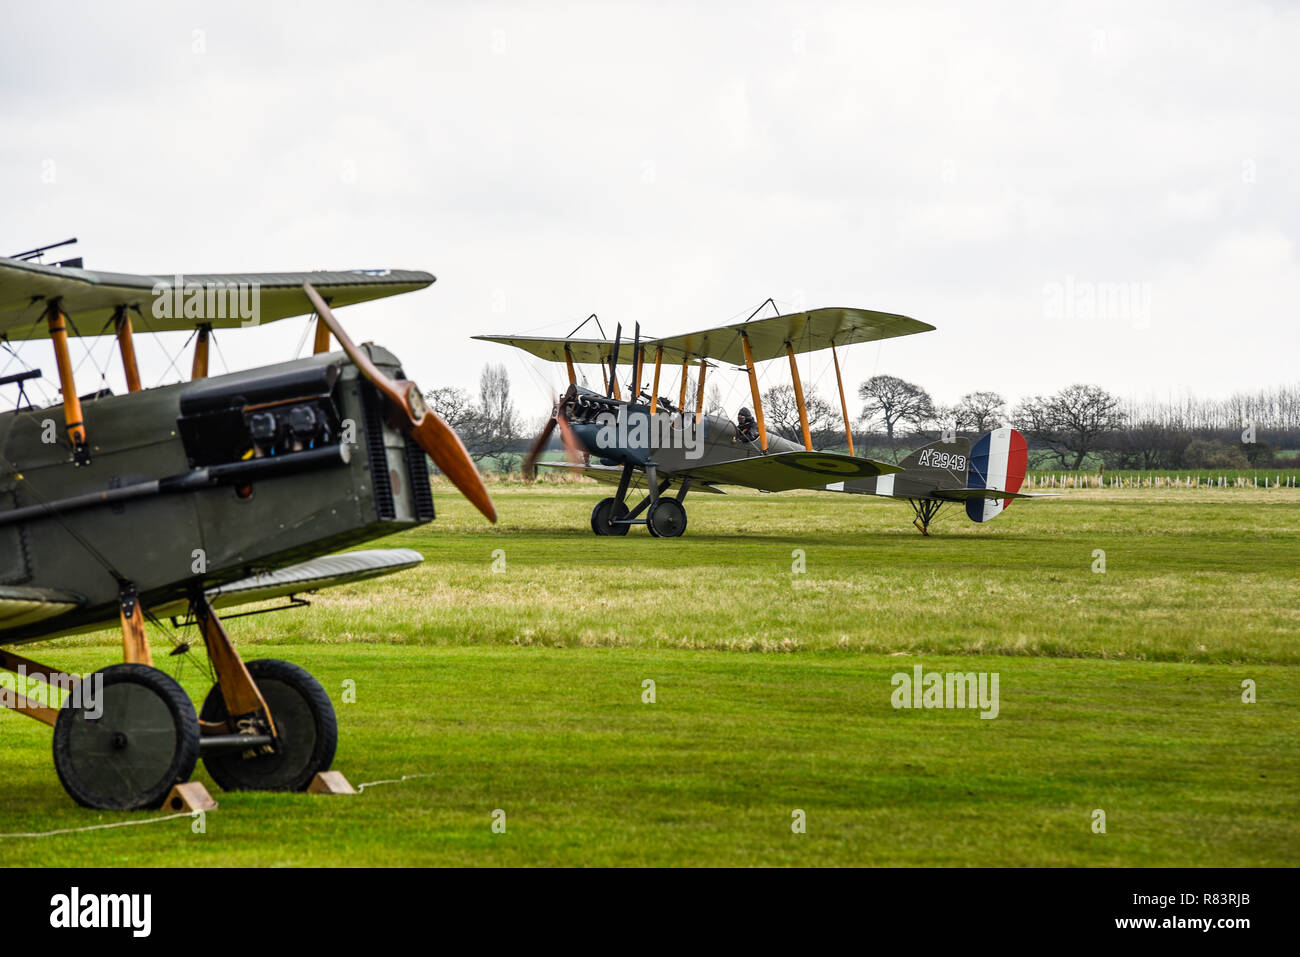 First World War Royal Flying Corps RFC or Royal Air Force RAF planes at Stow Maries World War One aerodrome. Great War airfield on centenary of RAF - Stock Image